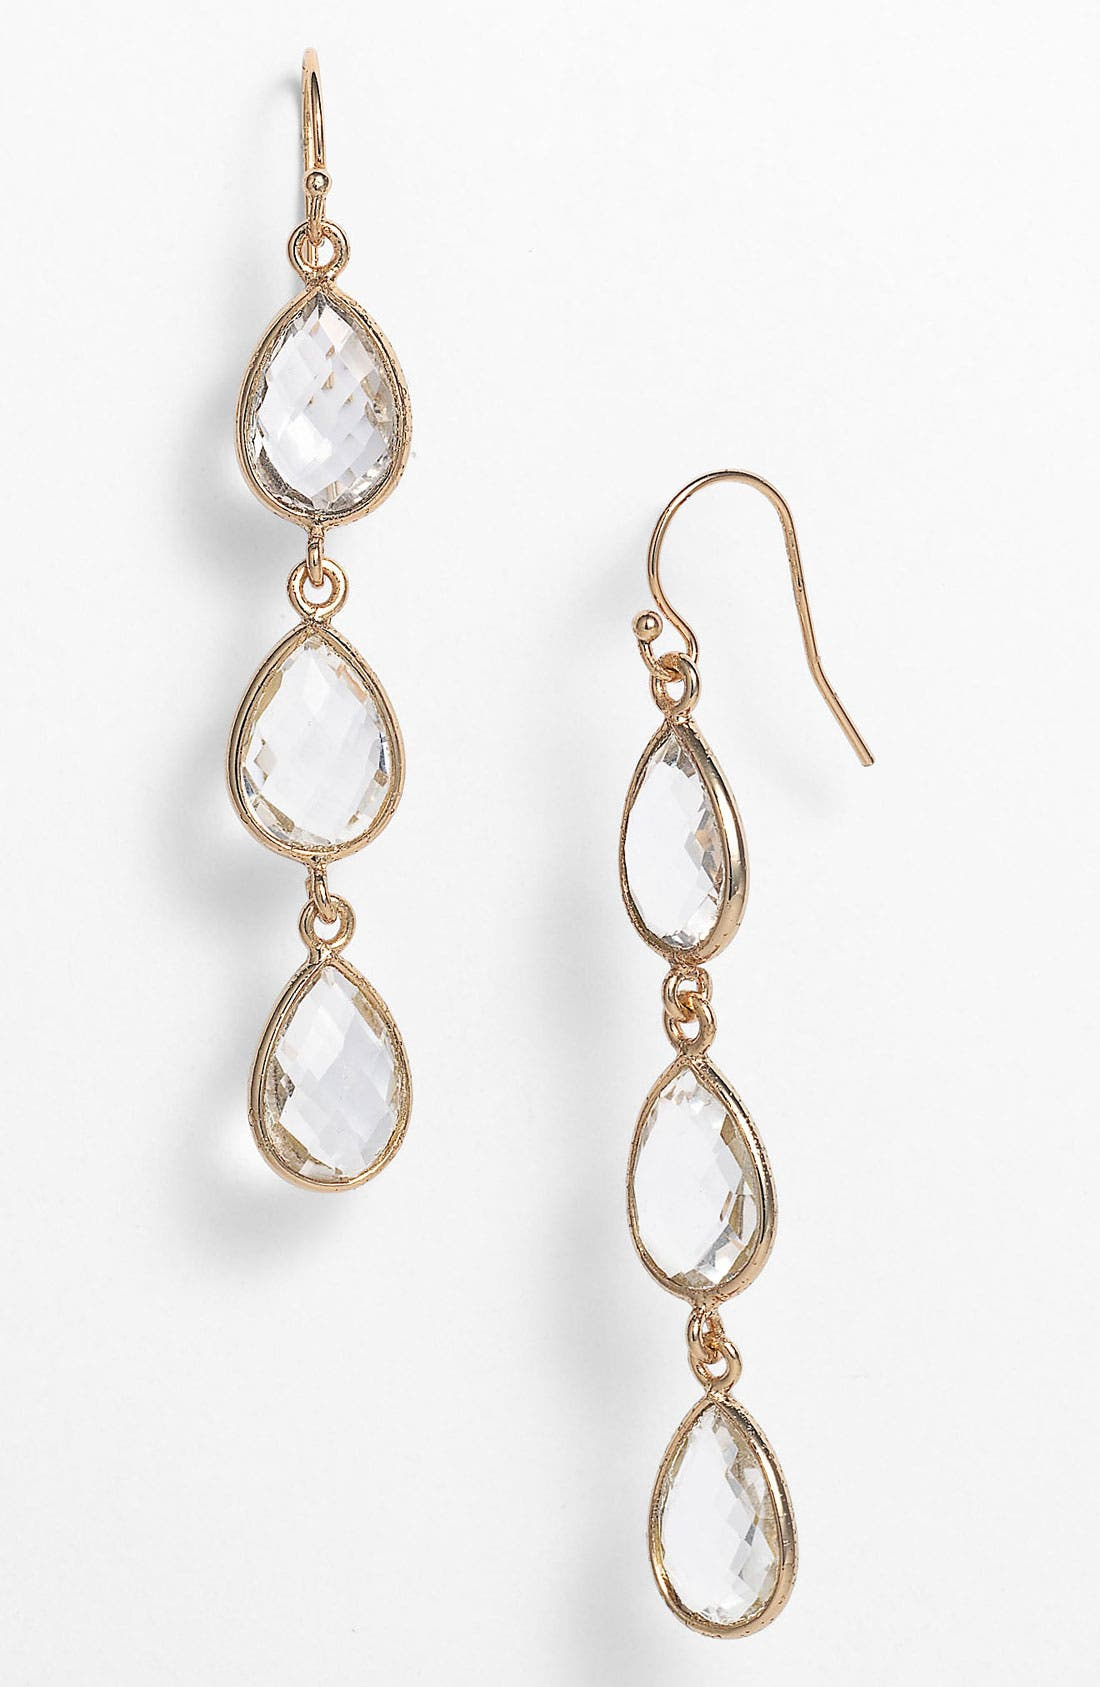 Alternate Image 1 Selected - NuNu Designs Teardrop Earrings